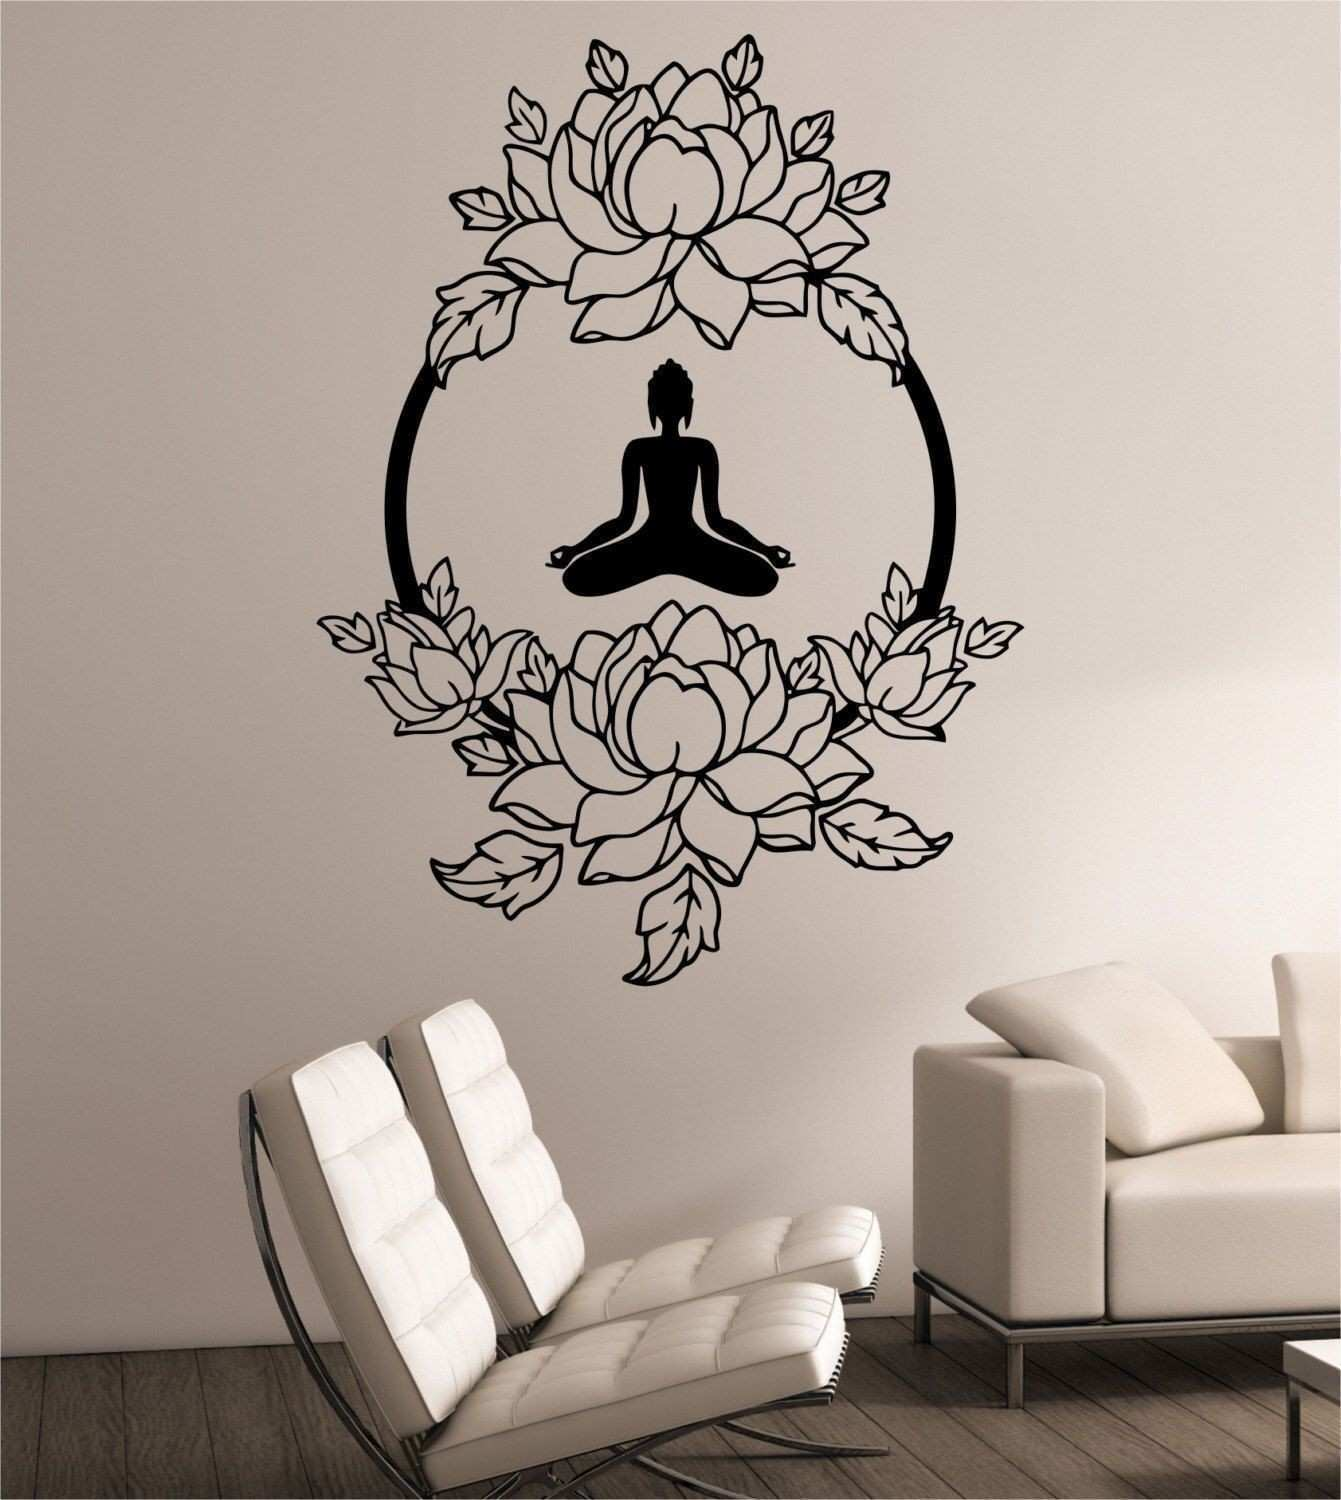 33 Inspirational Round Wall Decor